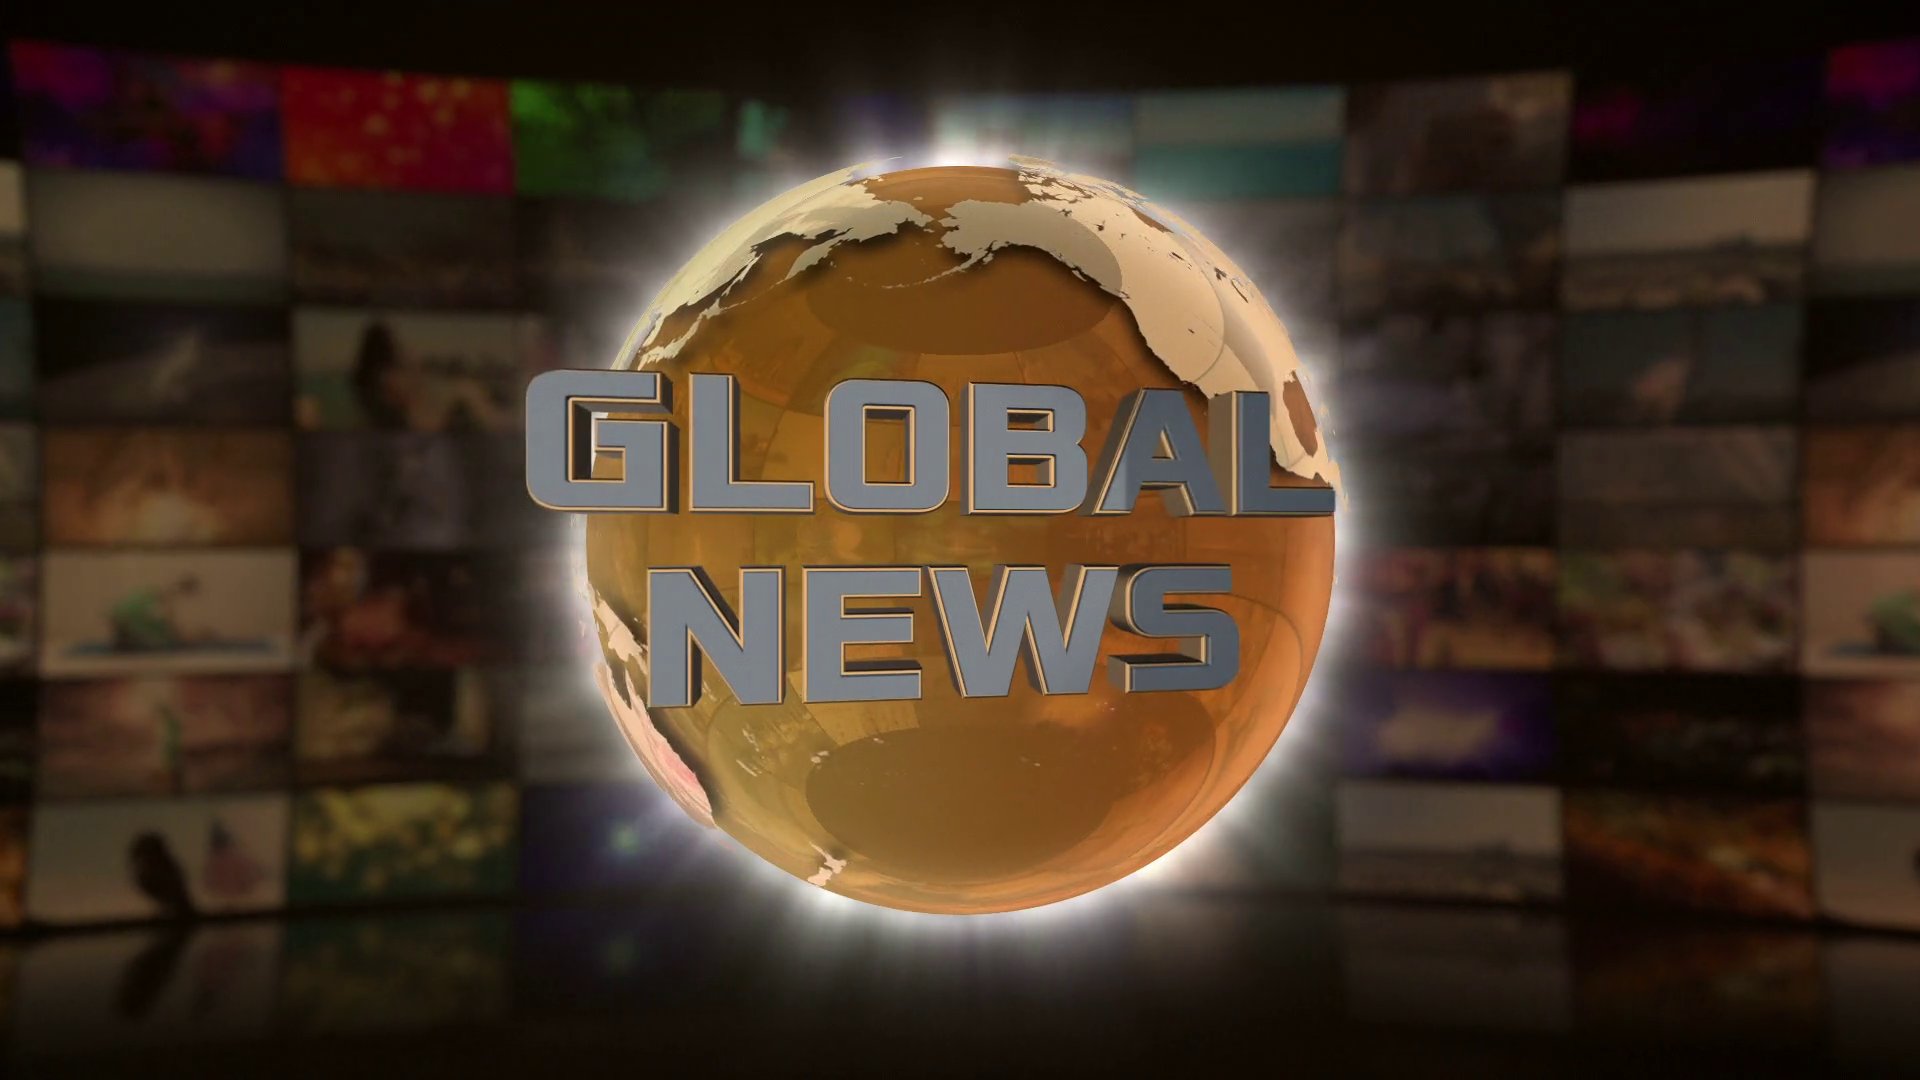 Global News On Screen 3D Animated Text Graphics | News Broadcast ...